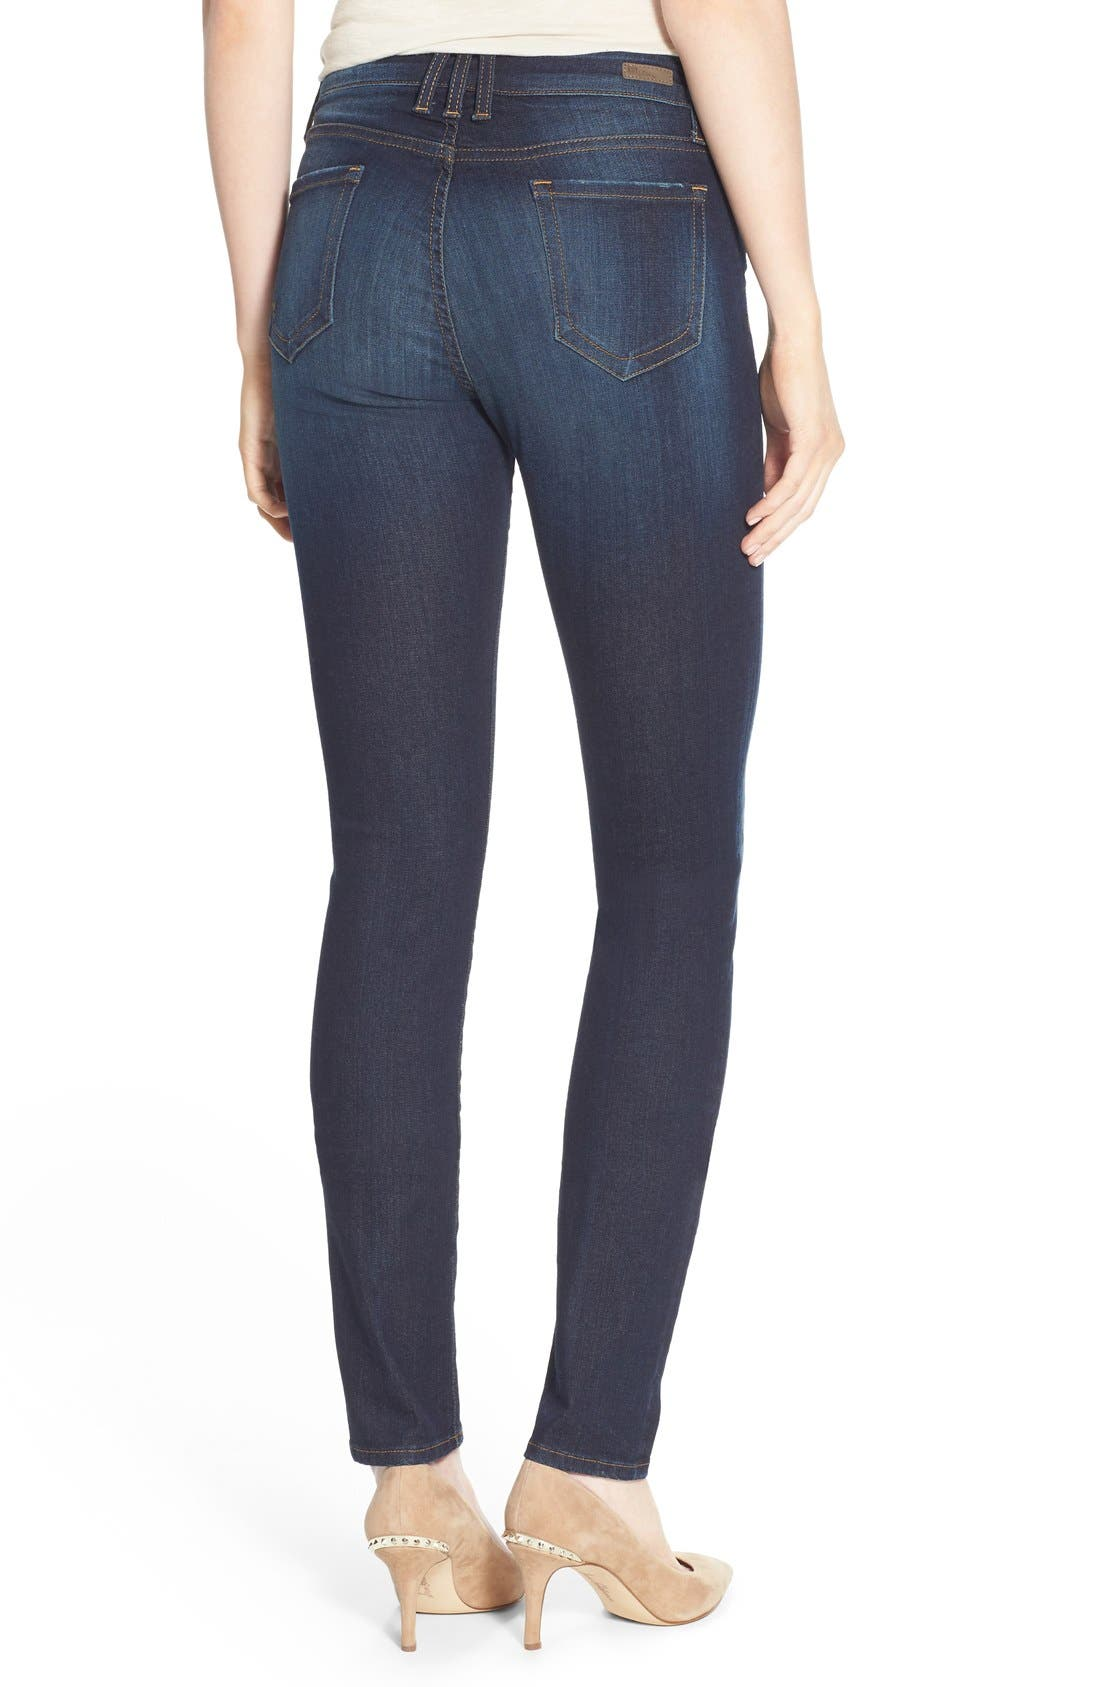 Alternate Image 3  - KUT from the Kloth 'Diana' Stretch Skinny Jeans (Blinding) (Regular & Petite)